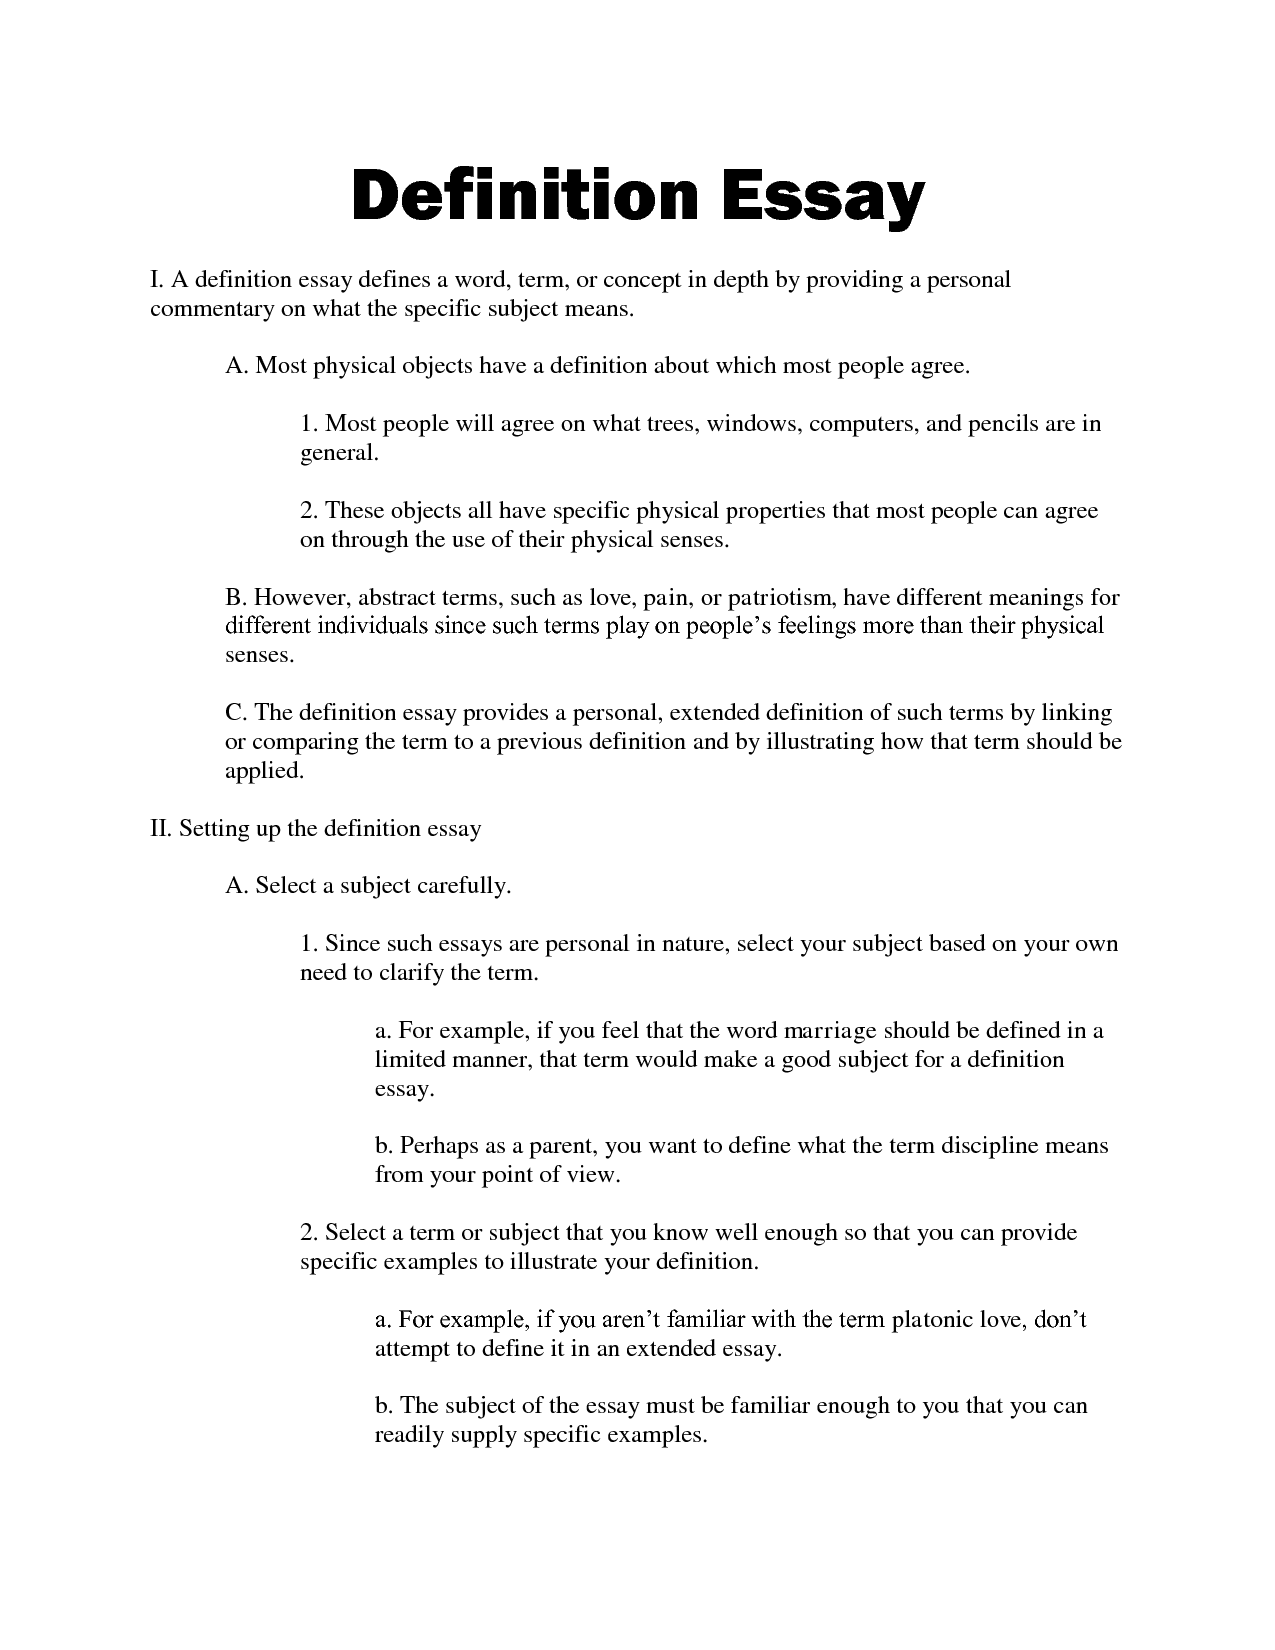 002 Essay Example Gj60o8orim How To Write Awesome A Definition Introduction Conclusion Paragraph For Outline Full